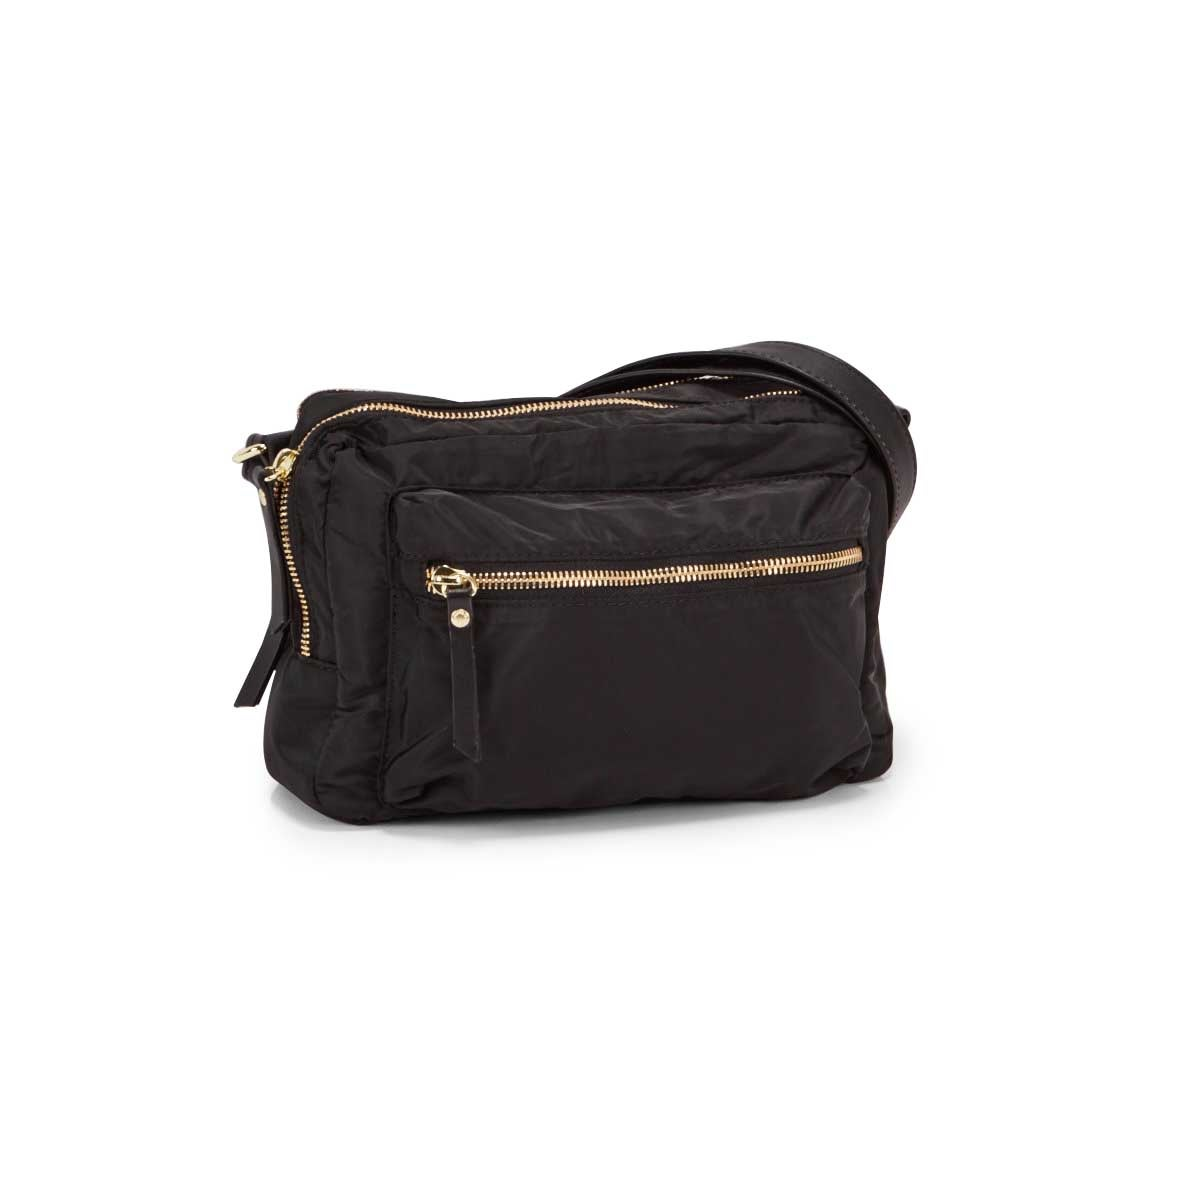 Lds Roots73 blk 2 compartment crossbody